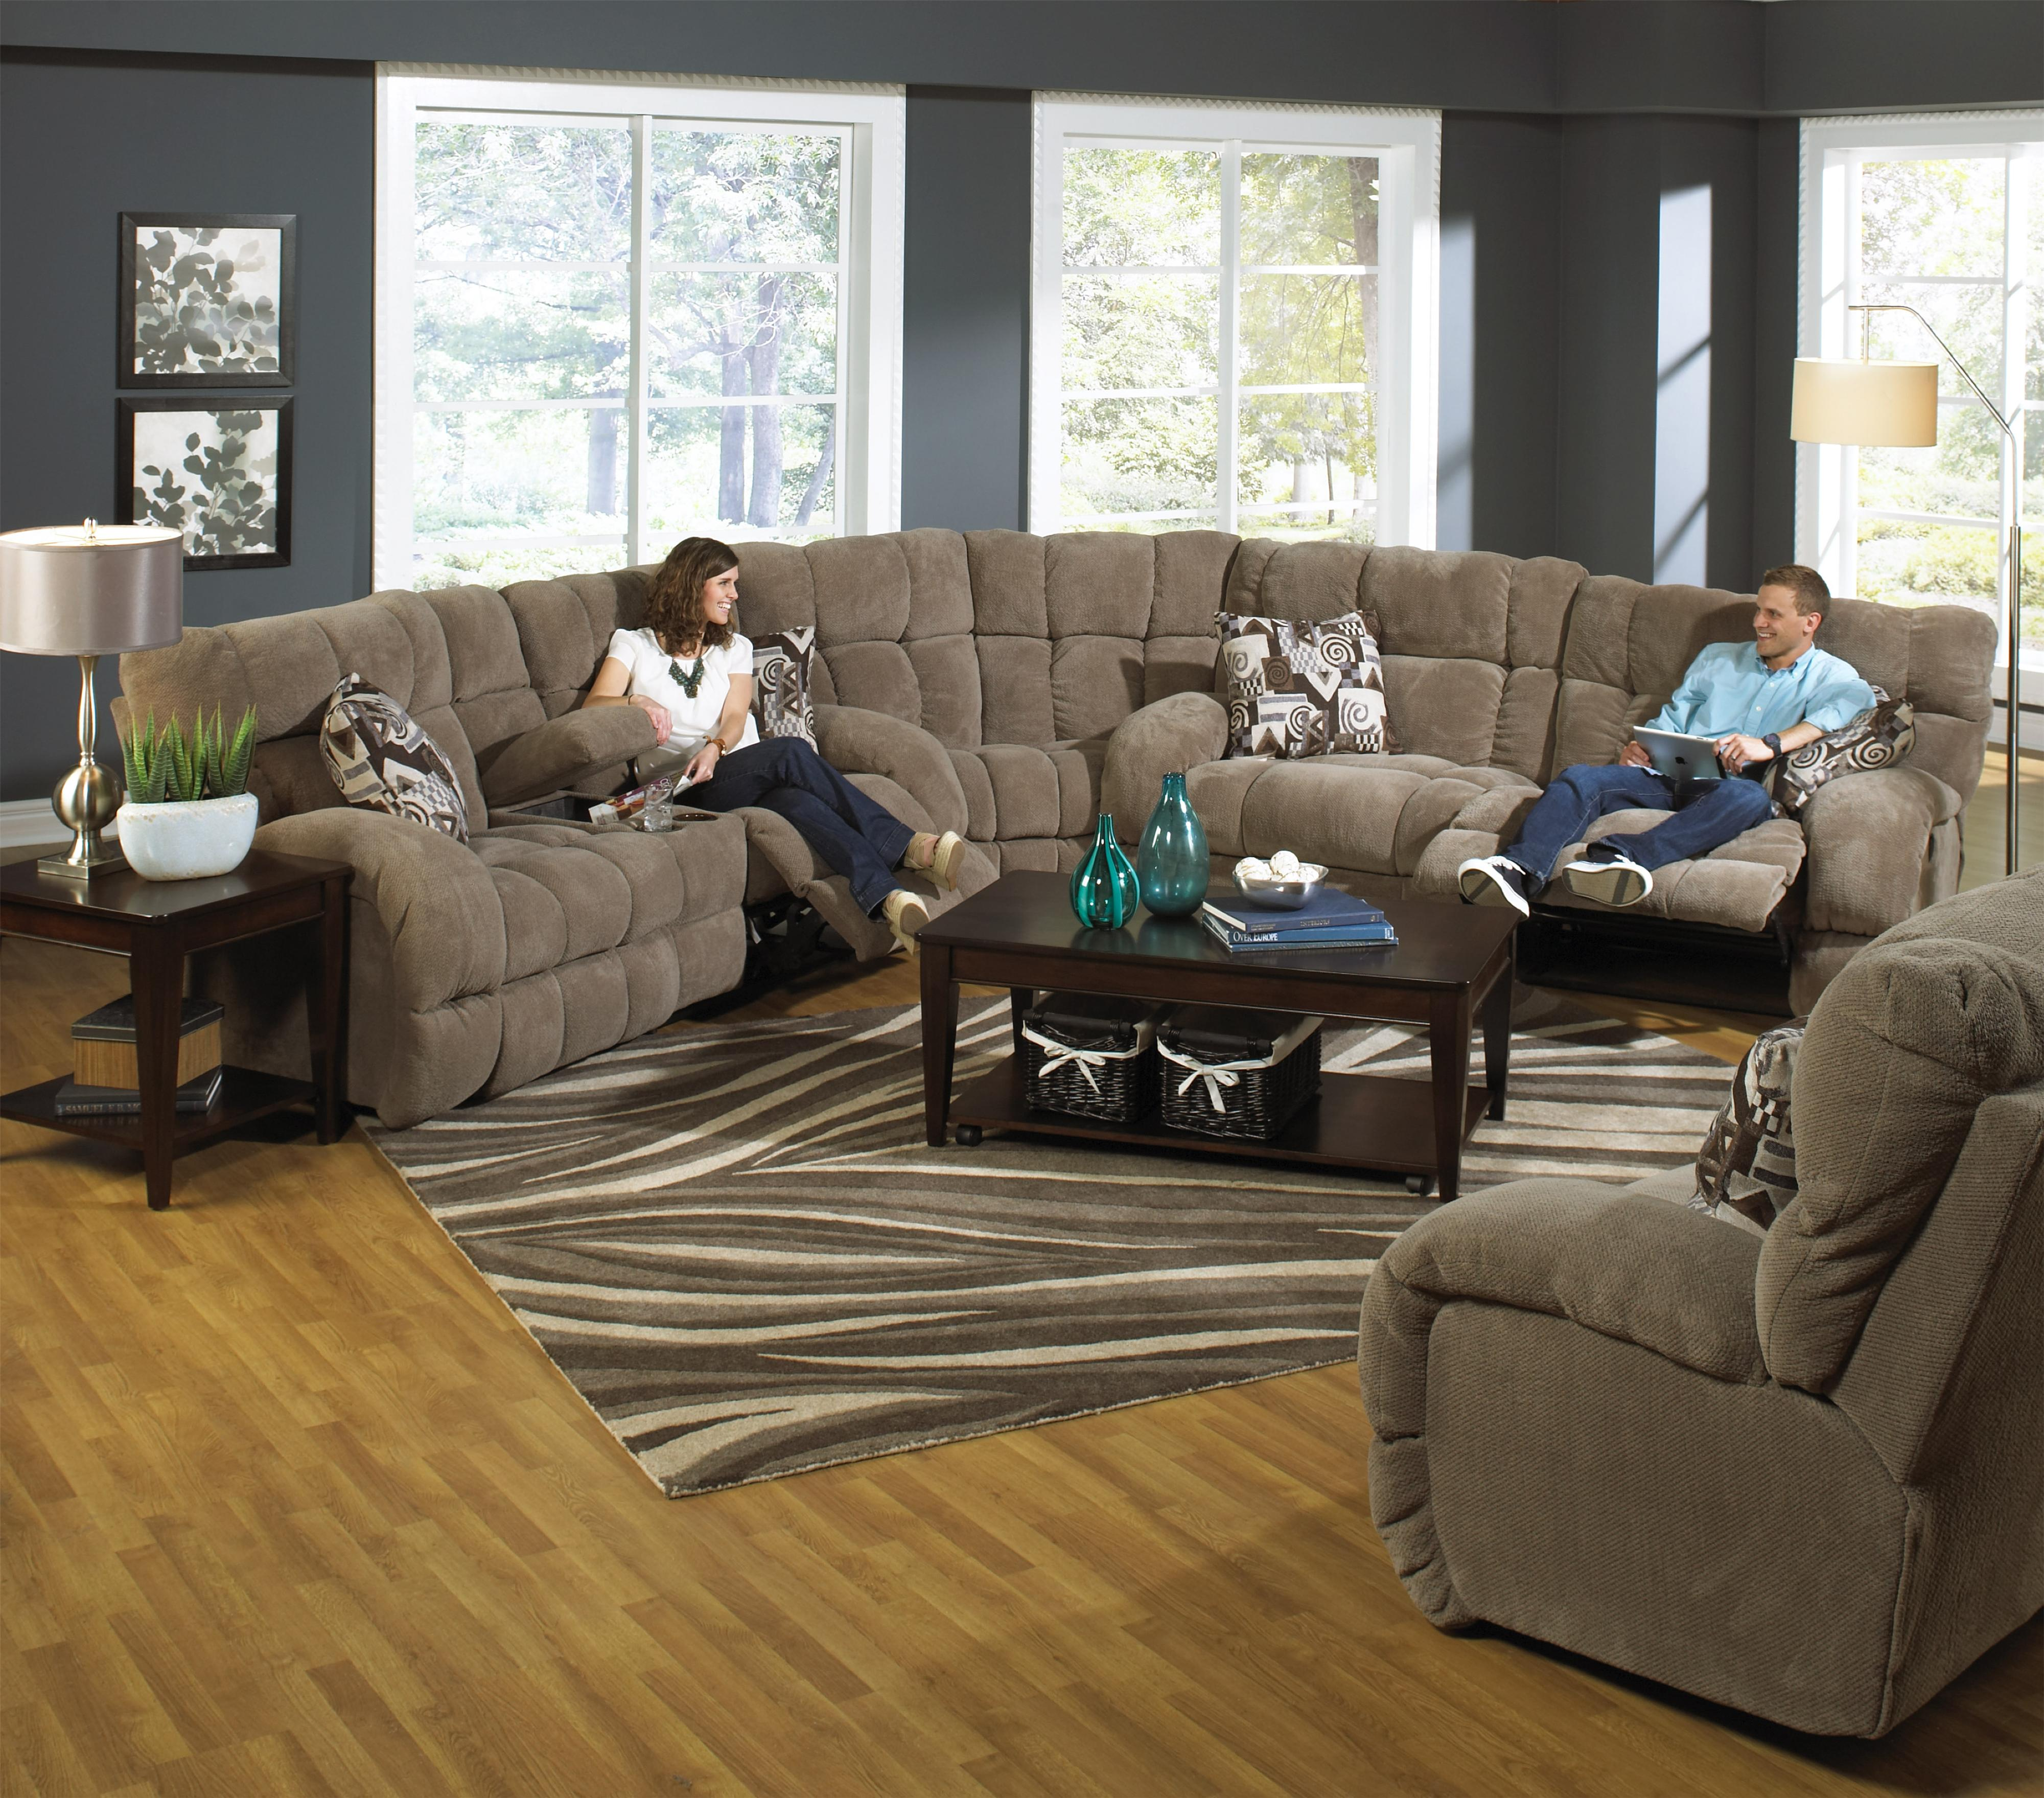 Power Reclining Sectional Sofa with Cup Holders : sectional recliner sofa with cup holders - Sectionals, Sofas & Couches